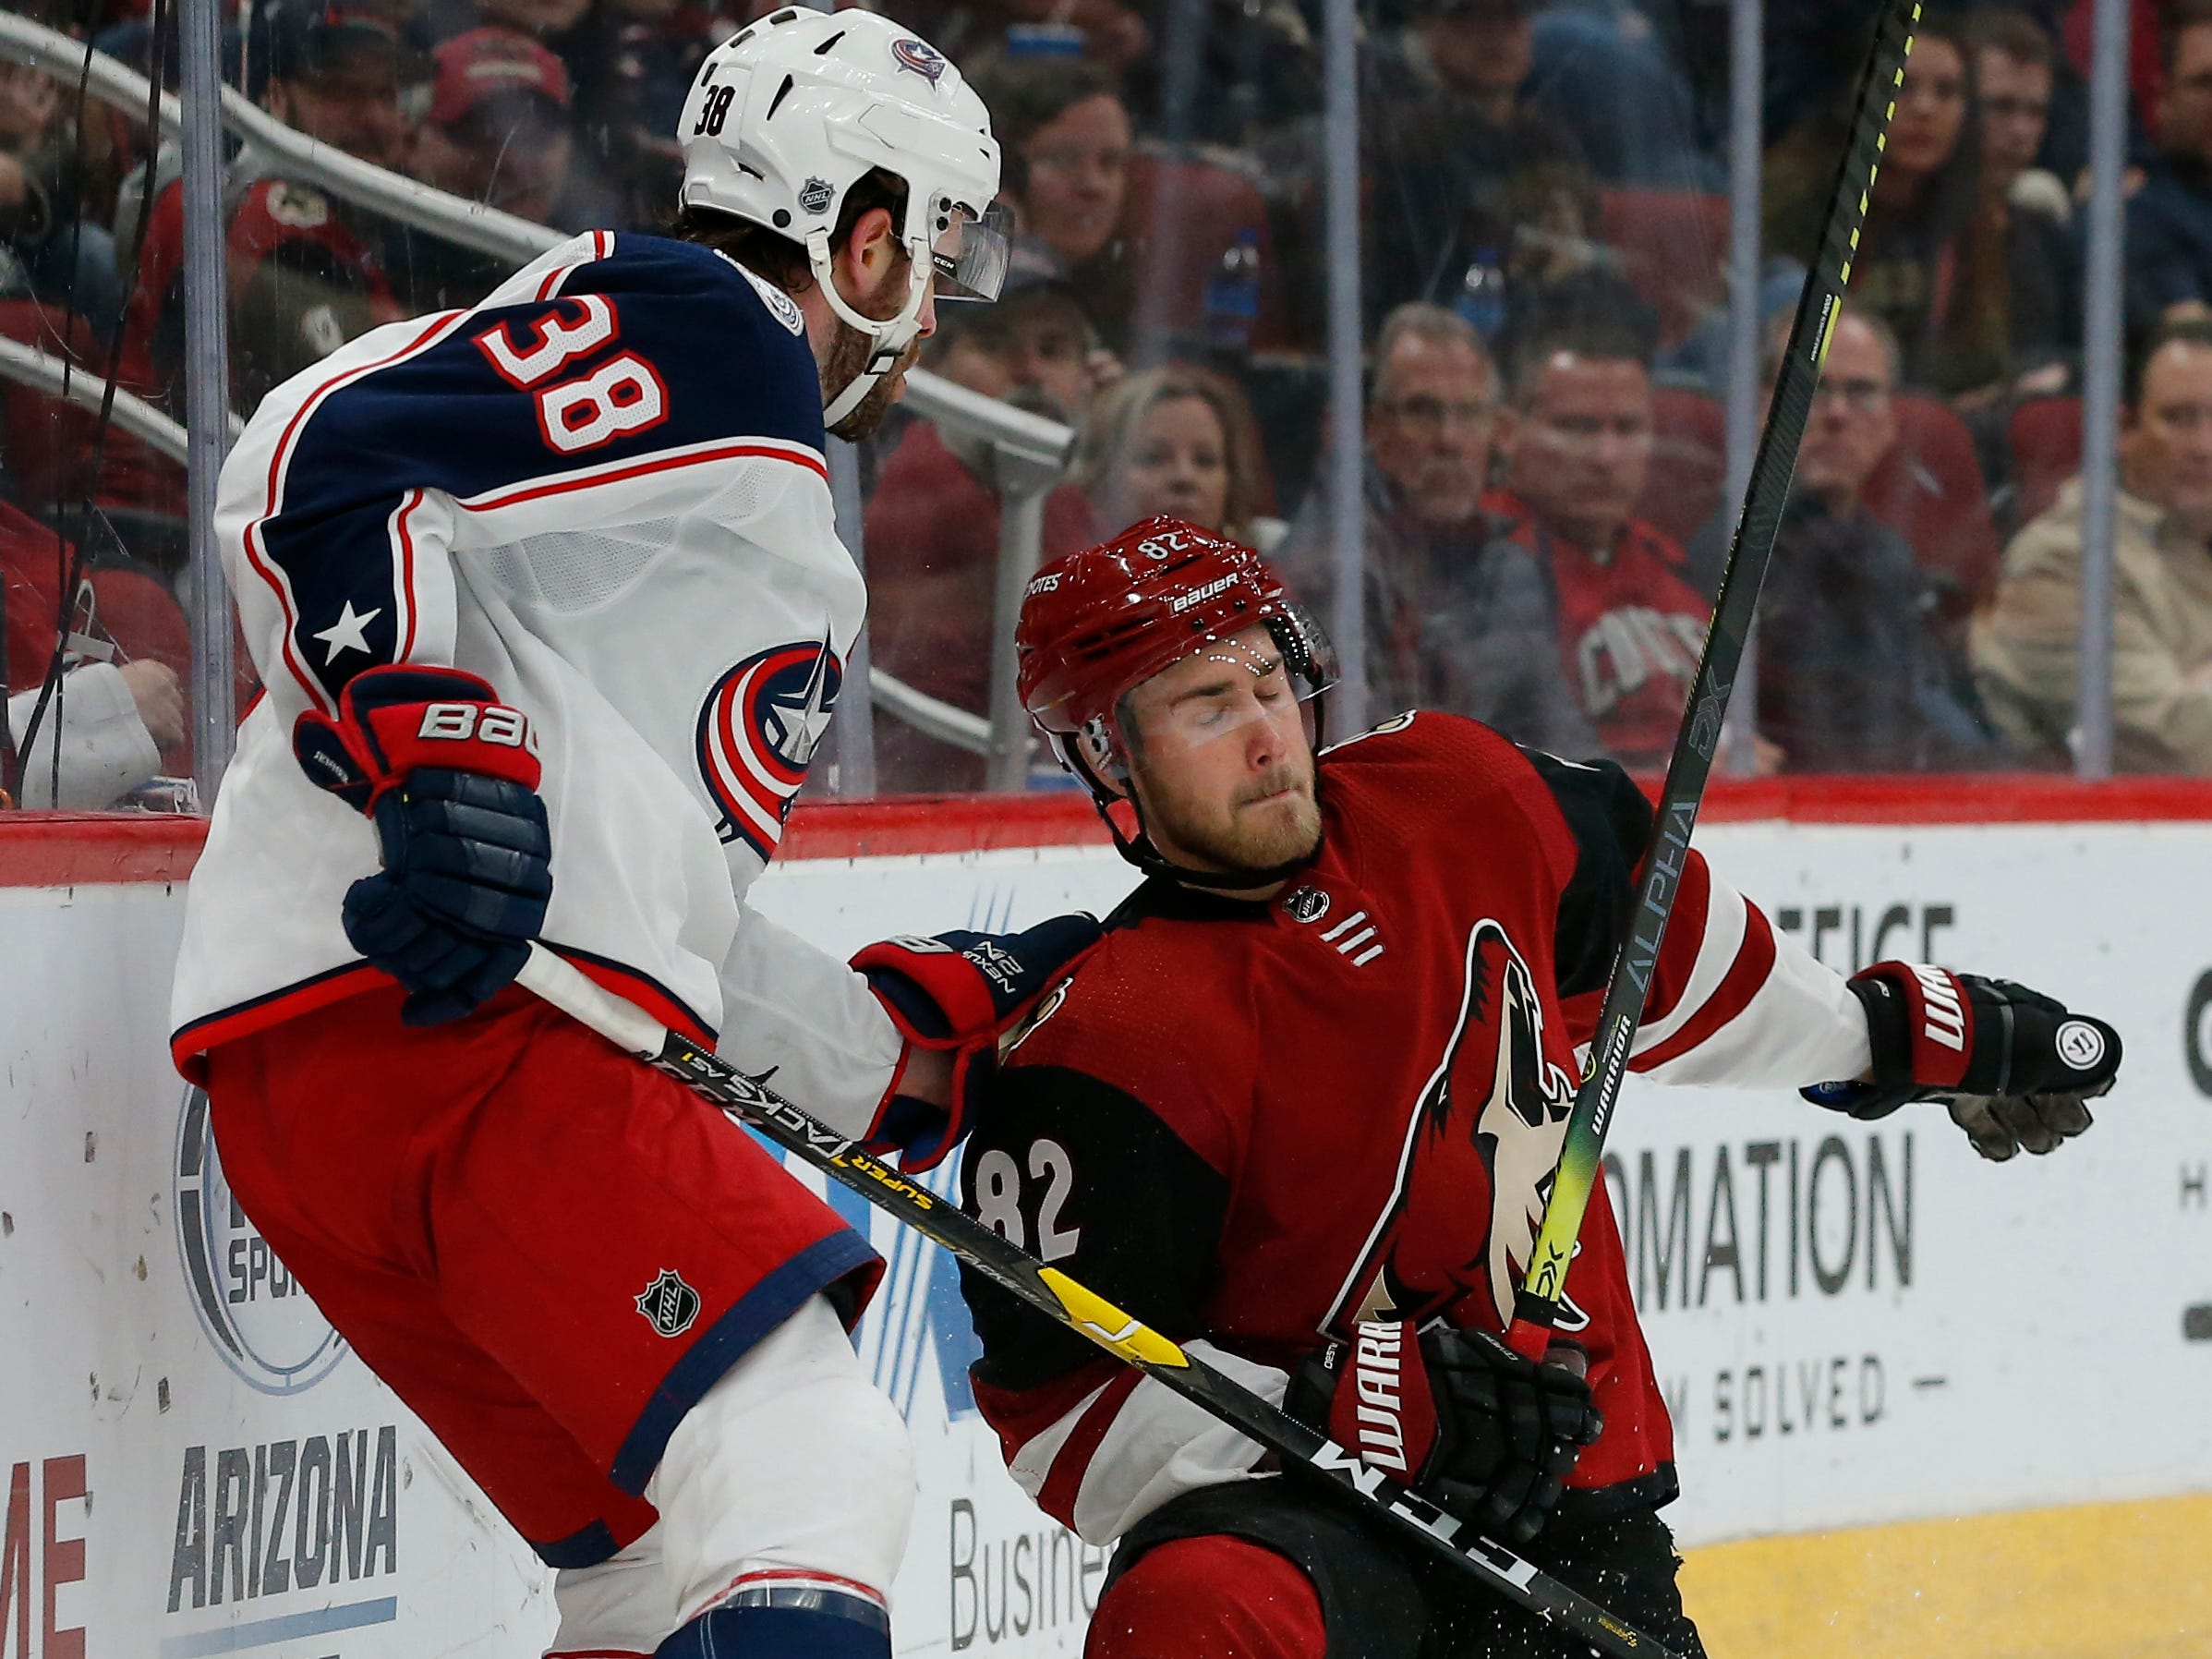 Columbus Blue Jackets center Boone Jenner (38) in the first period during an NHL hockey game against Arizona Coyotes defenseman Jordan Oesterle (82), Thursday, Feb. 7, 2019, in Glendale, Ariz.